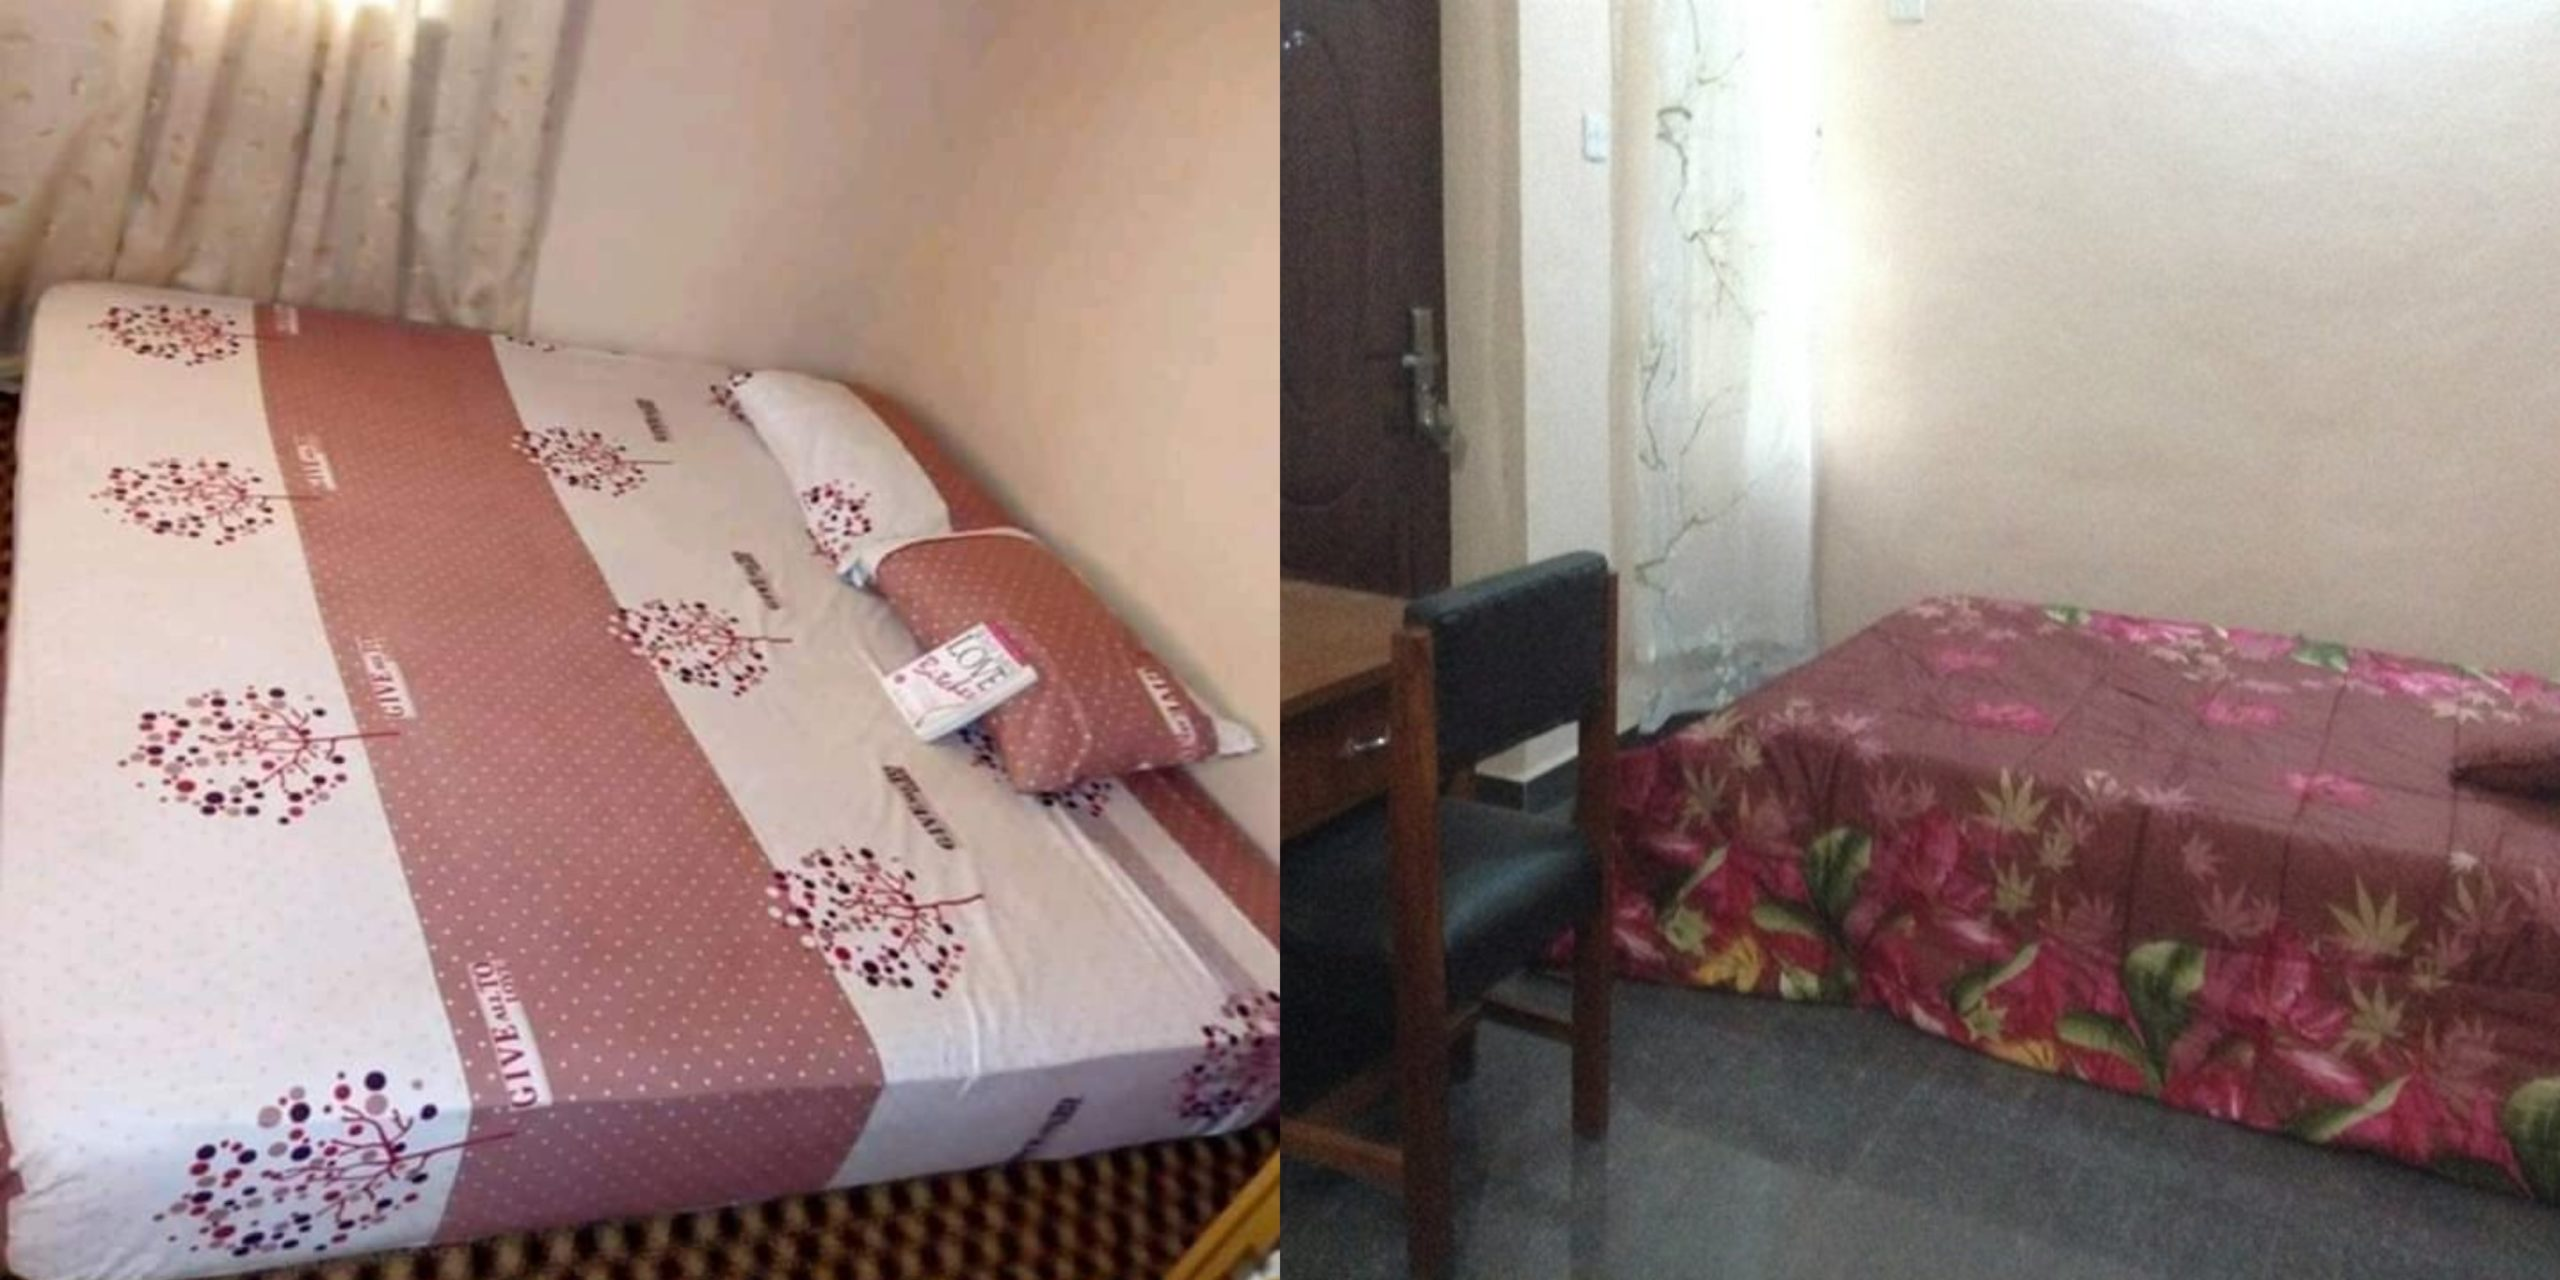 Ladies please don't date a guy whose mattress is on the floor' – Nigerian lady advises (1)